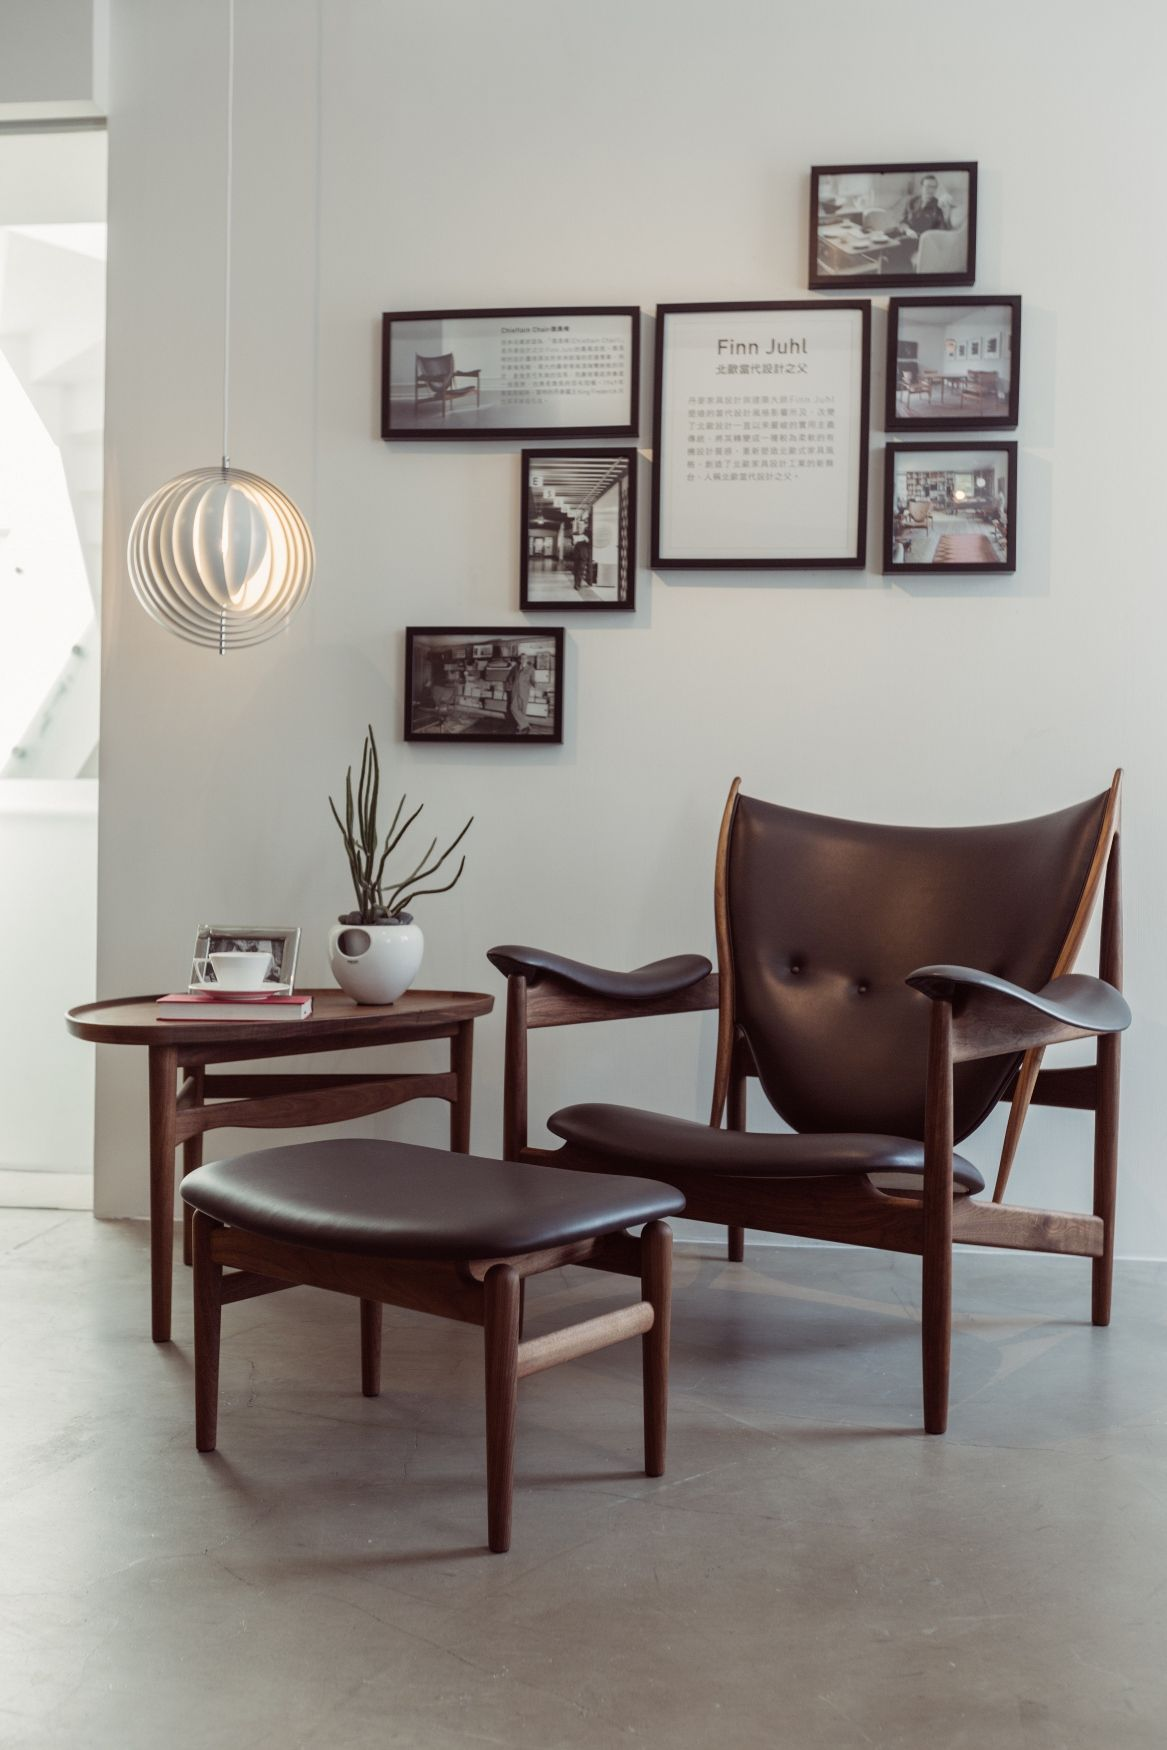 iconic designer furniture. The Iconic Chieftain Chair, Designed By Danish Designer Finn Juhl In 1949, Completed Furniture C